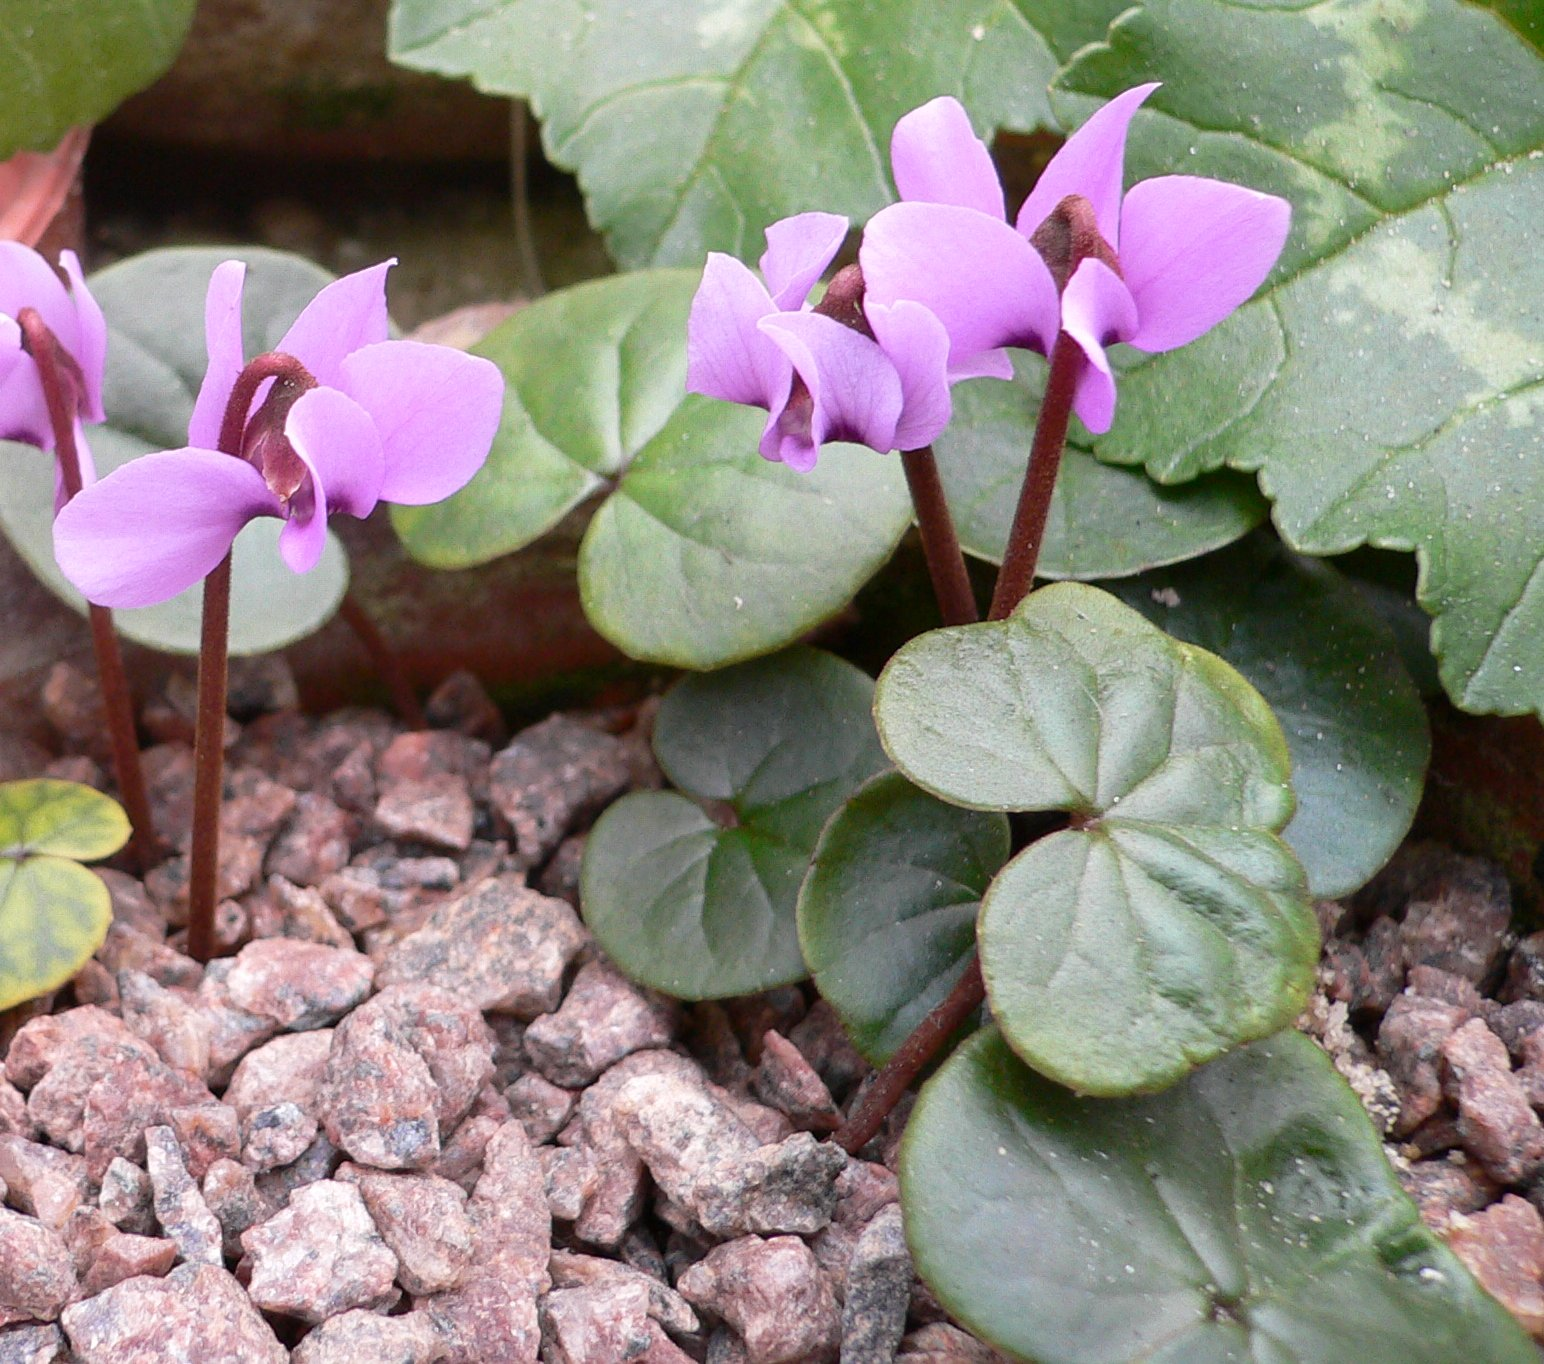 Циклaмeн Мeлкoцвeткoвый (Cyclamen parviflorum)